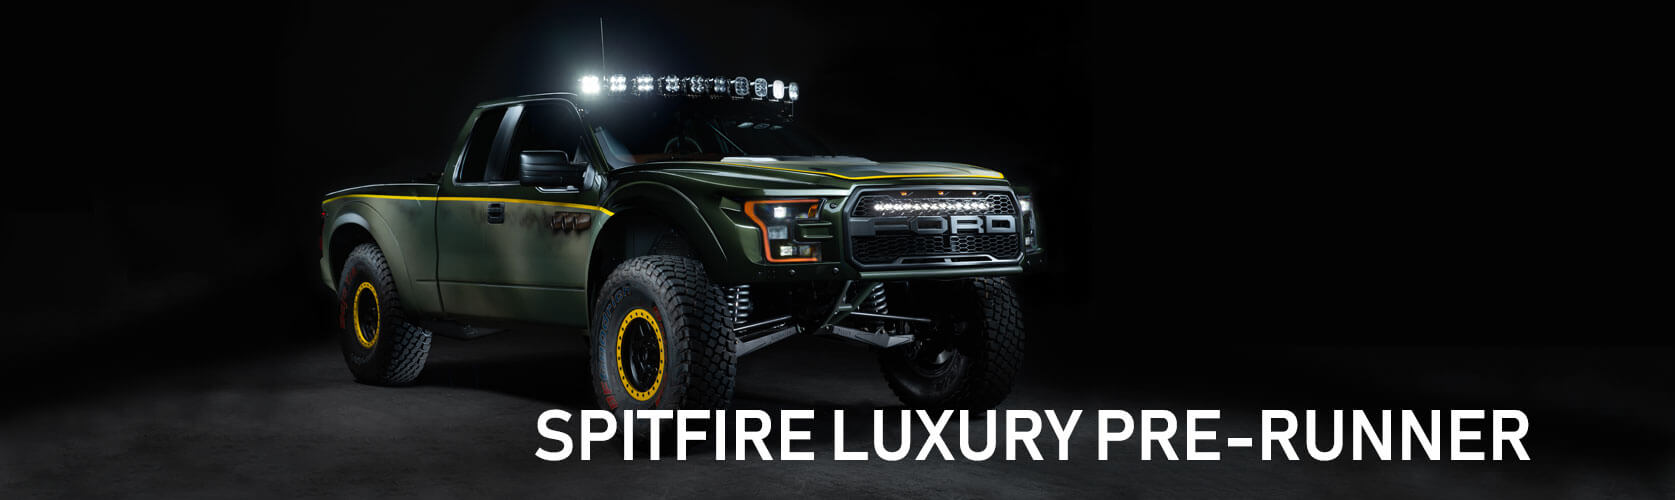 Spitfire Racing Luxury Pre-Runner